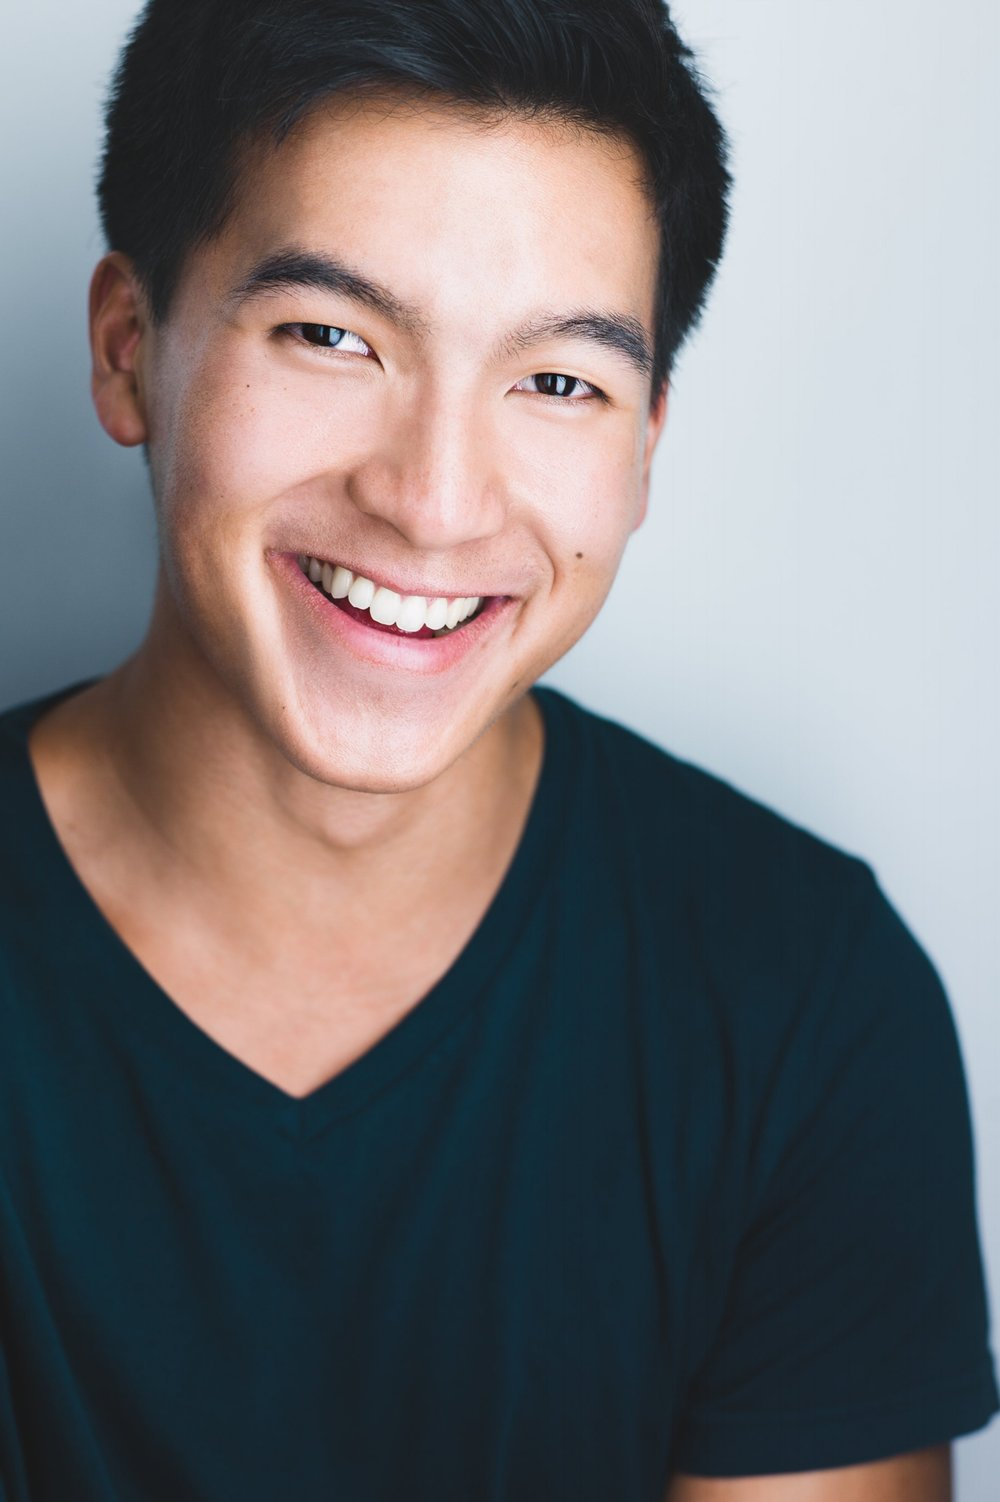 Andy Do is an actor and writer based in NYC. Tired of auditioning for roles that often pigeon-holed Andy into a certain type, he founded So La Do Productions as a creative outlet for him and his friends to tell the stories he wanted to tell. He's currently in pre-production for Searching for the None, a short comedic film he wrote and will star in. -